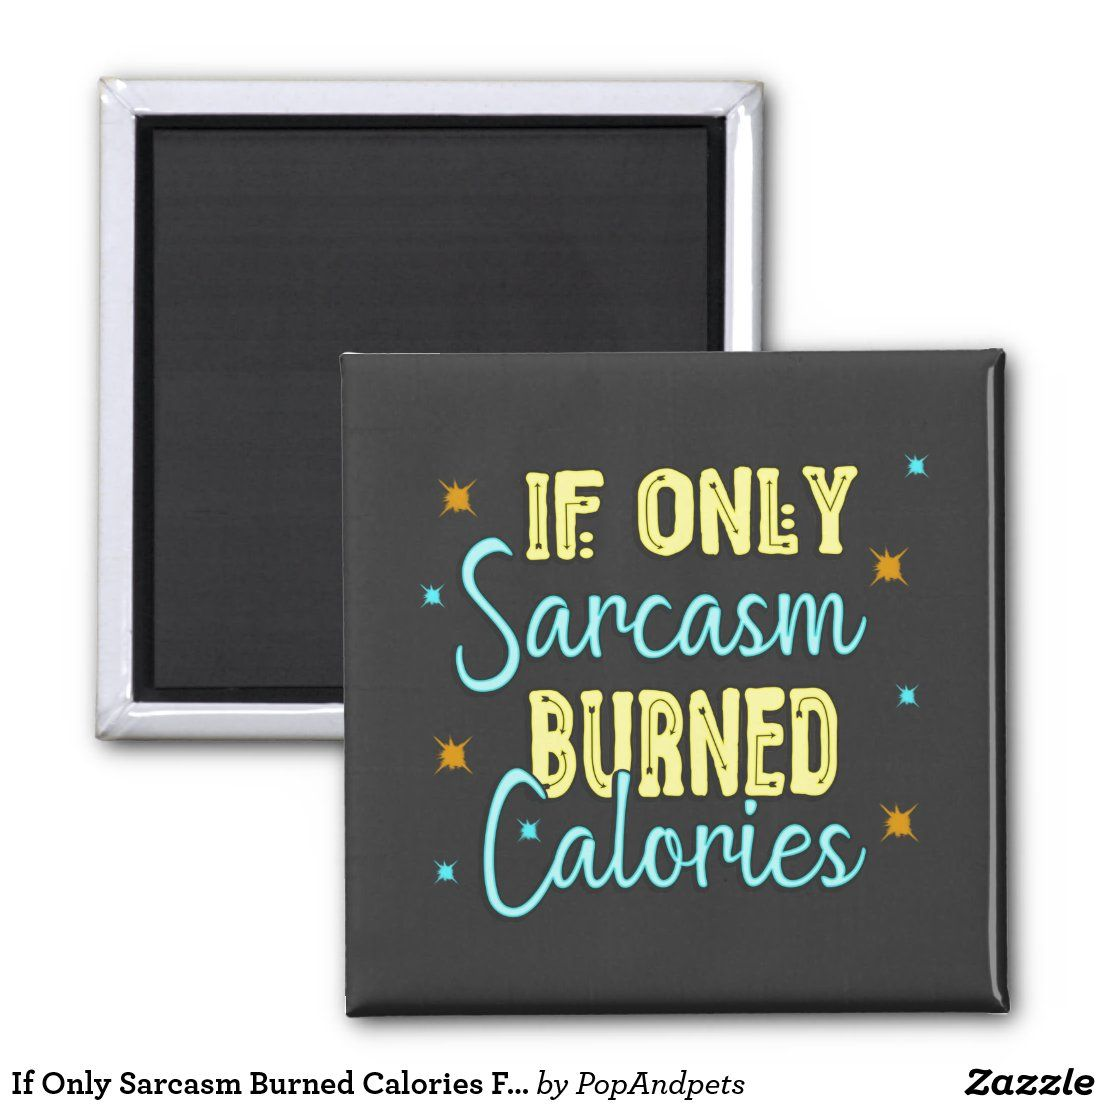 If Only Sarcasm Burned Calories Funny Quote Gifts Magnet Zazzle Com In 2021 Funny Gift Quotes Gift Quotes Funny Quotes